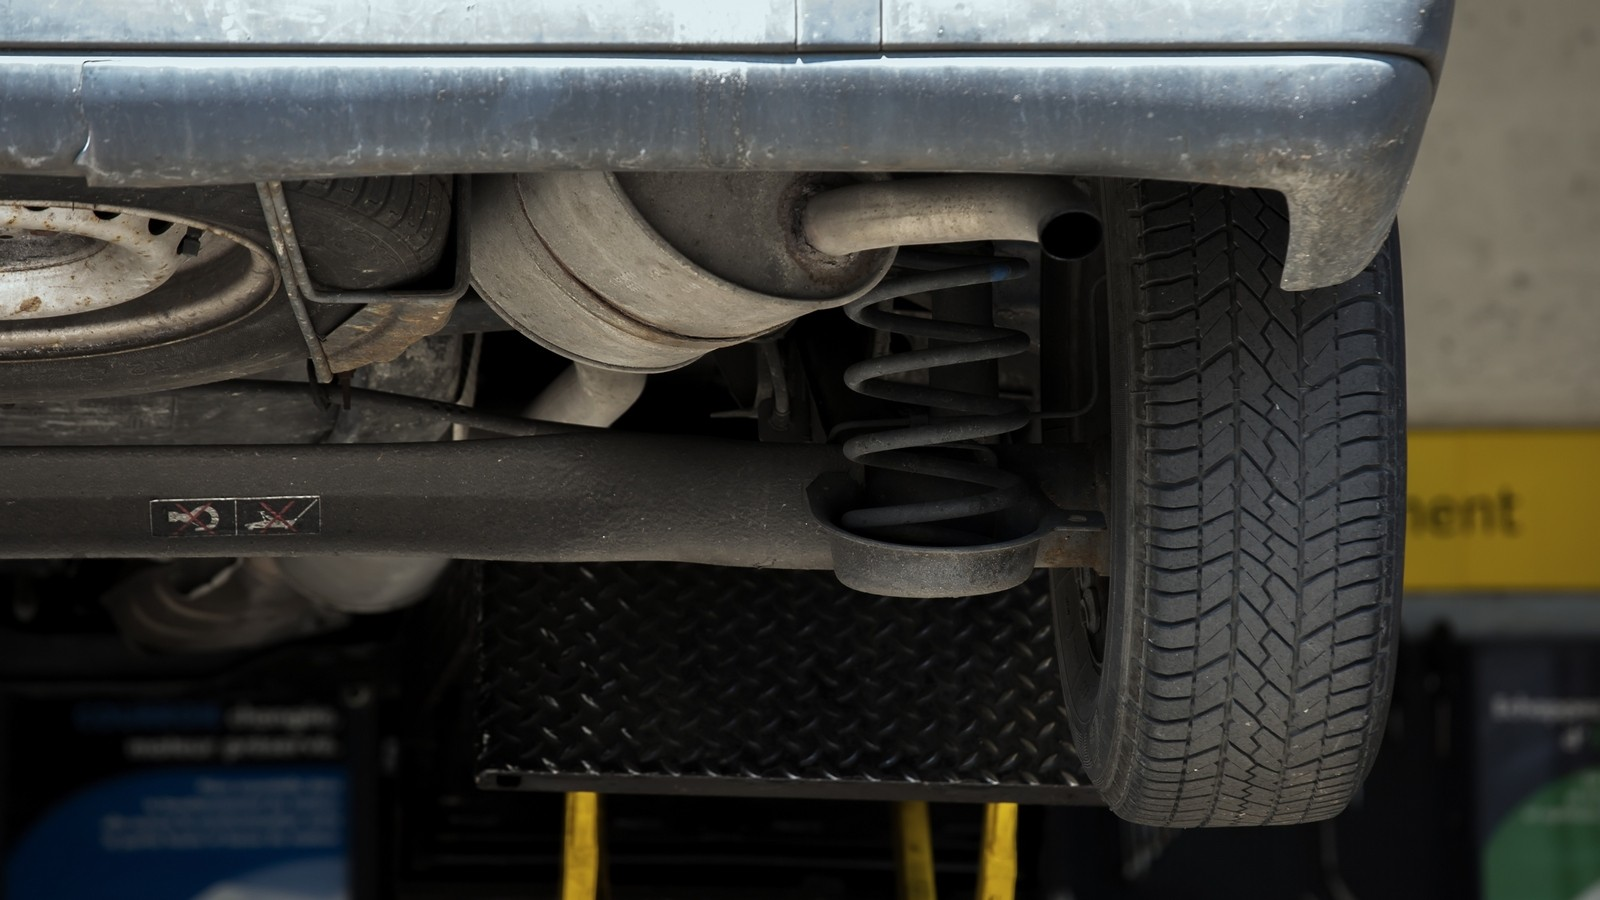 Close Up of shock absorbers replacement in a garage